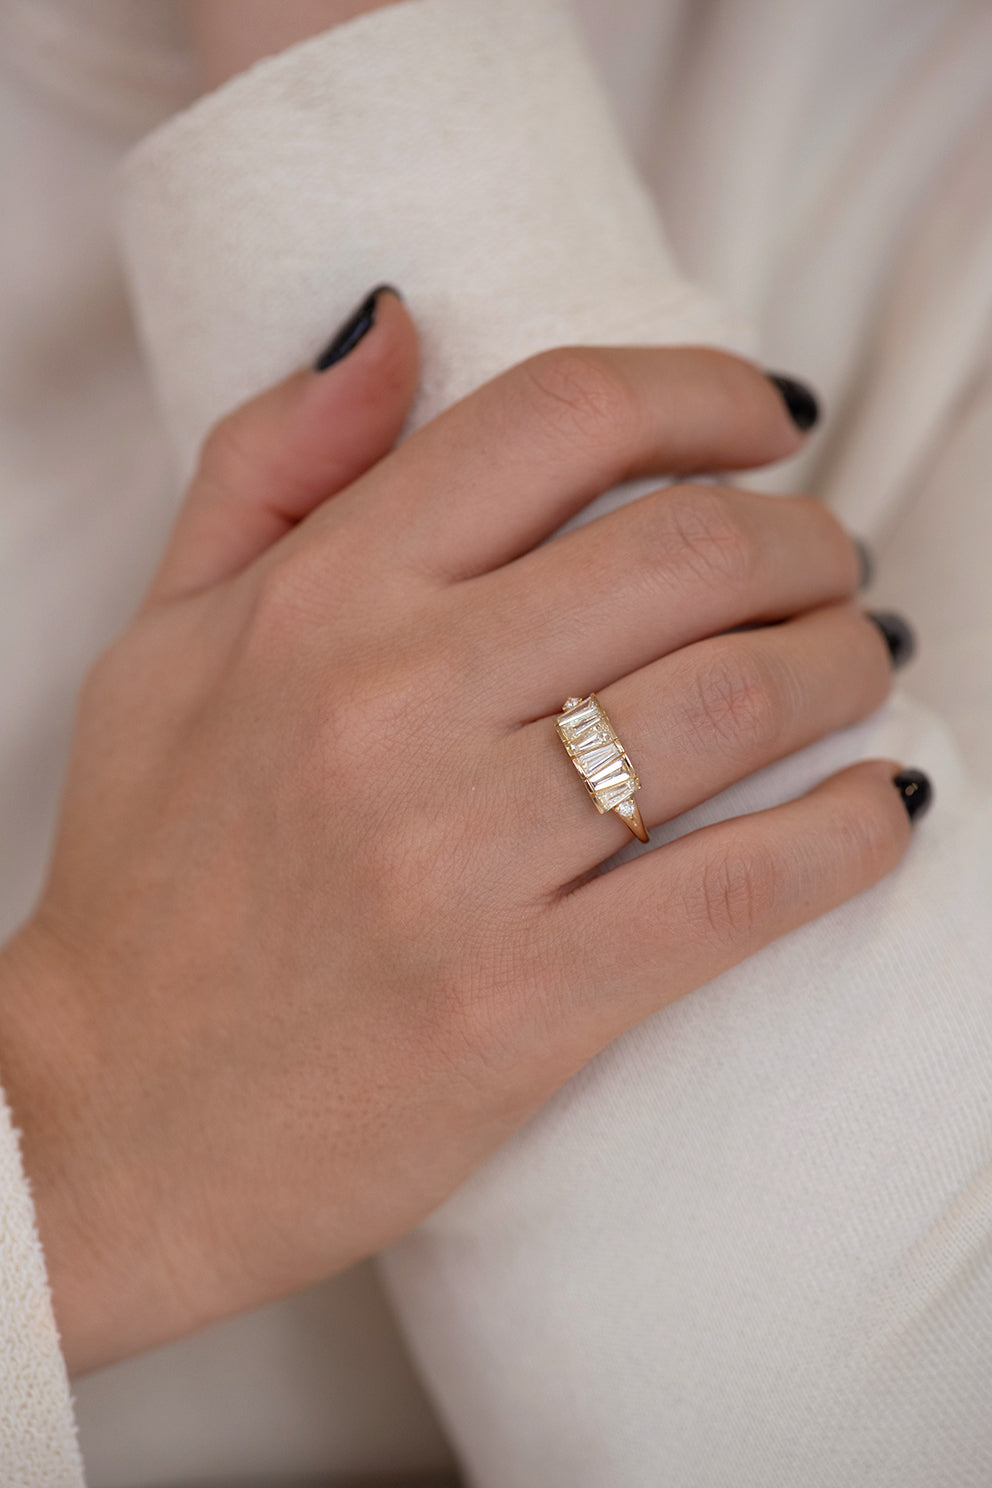 OOAK Tapered Baguette Diamond Lineup Ring on Hand and Arm